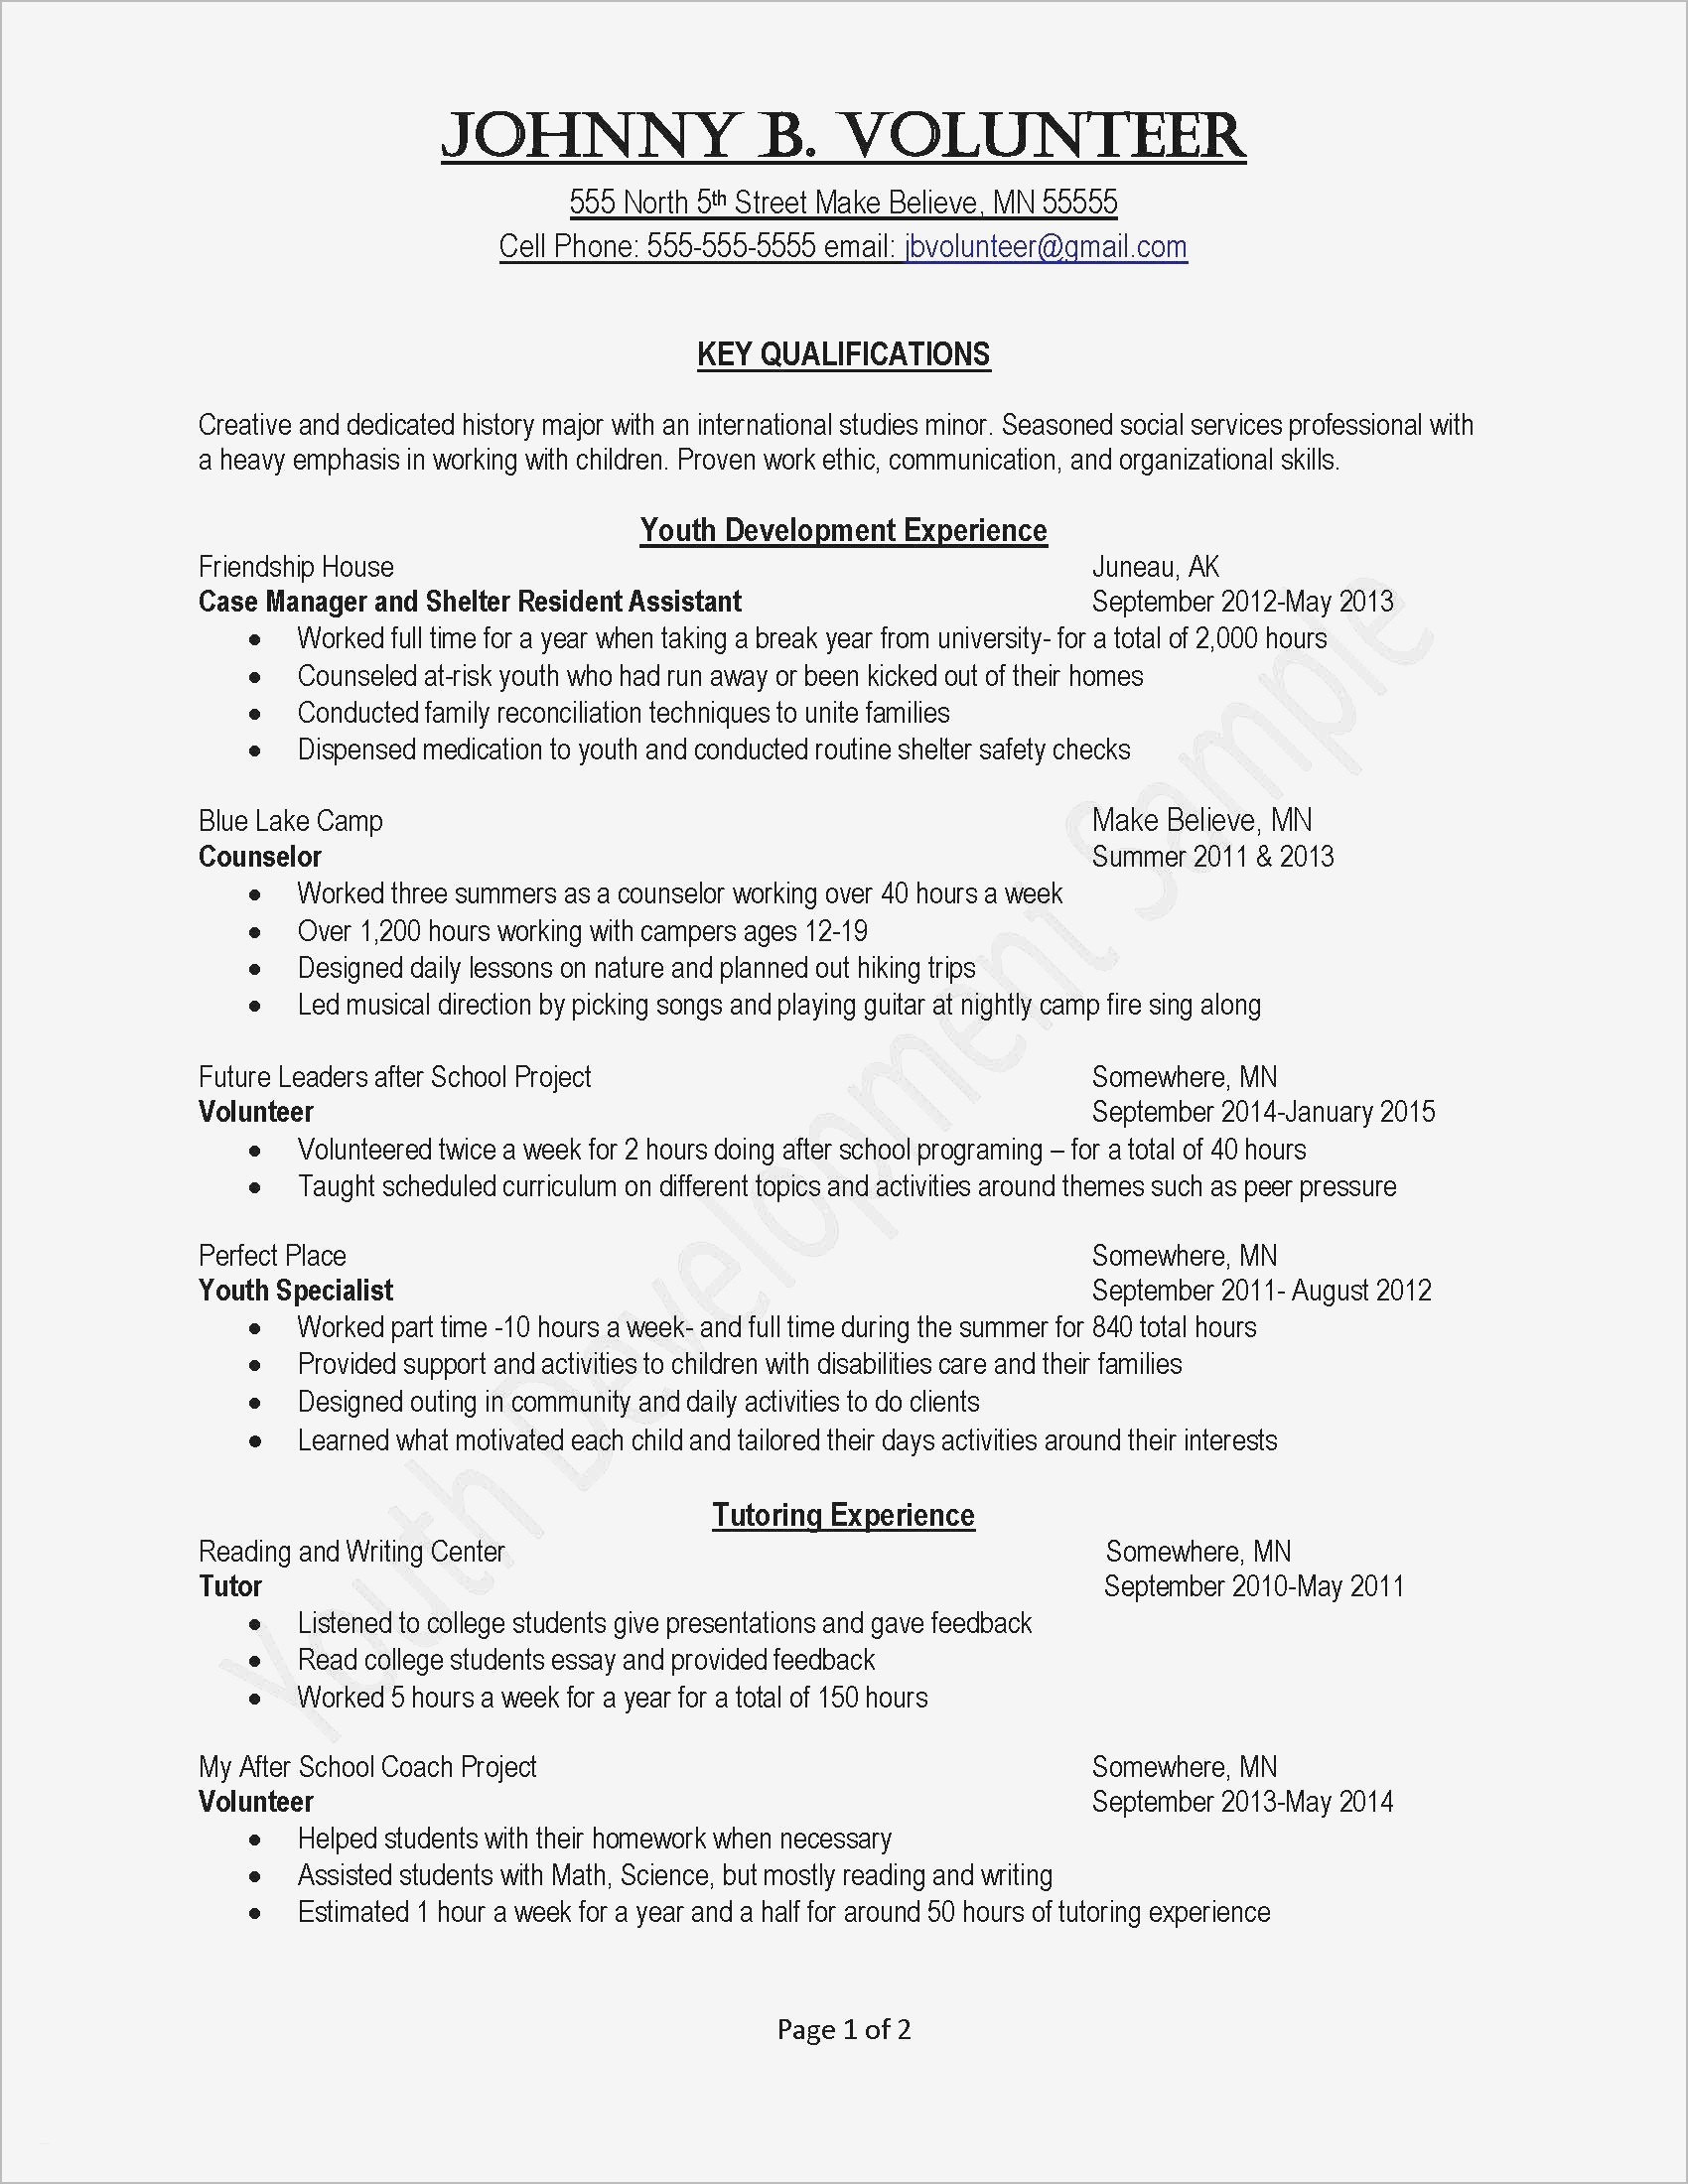 Cv Cover Letter Template - 1 Page Resume Templates Fresh Job Fer Letter Template Us Copy Od